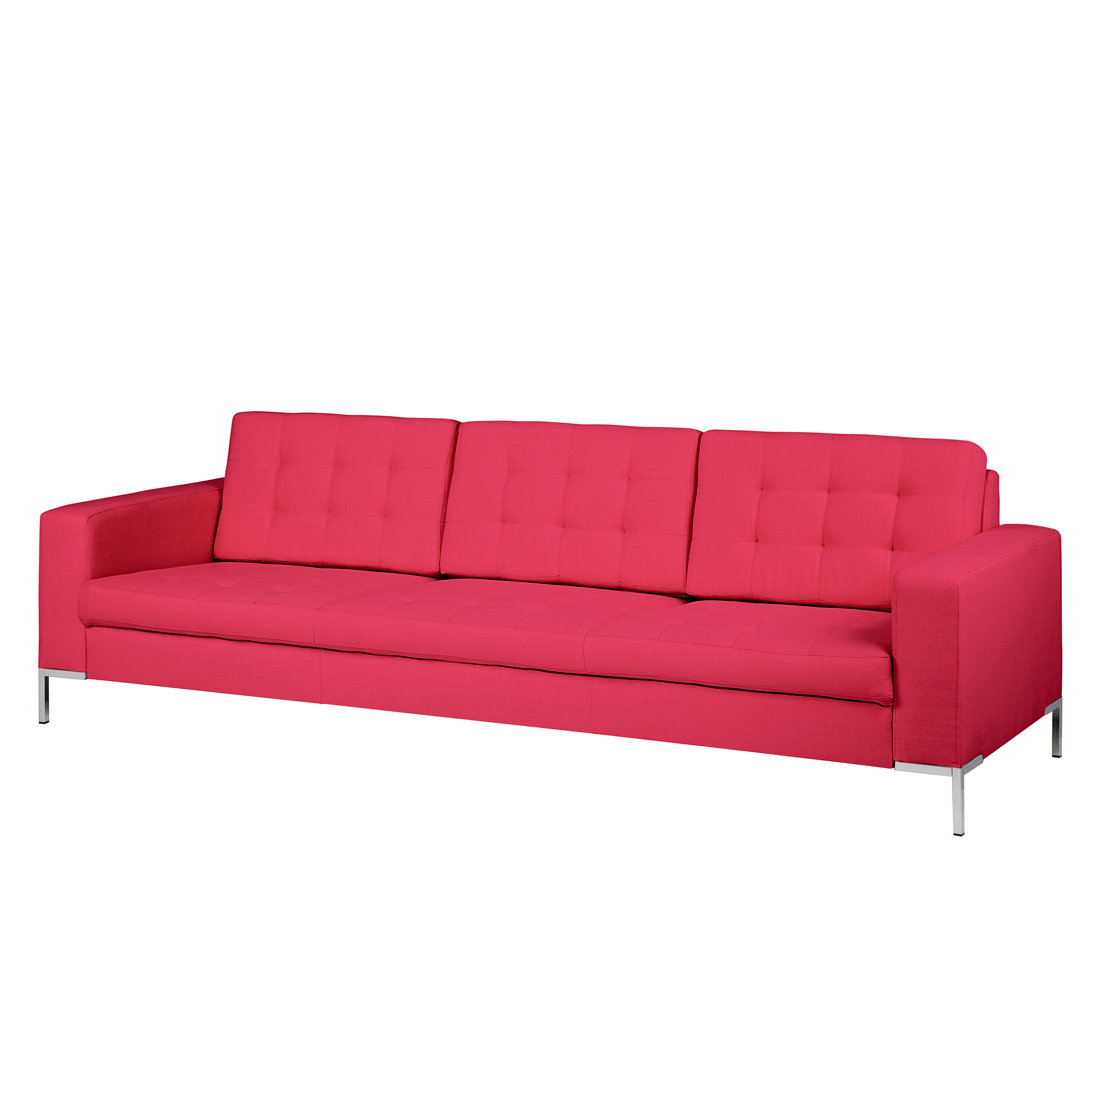 Top Sofa In Rot ~ artownit for . PH52